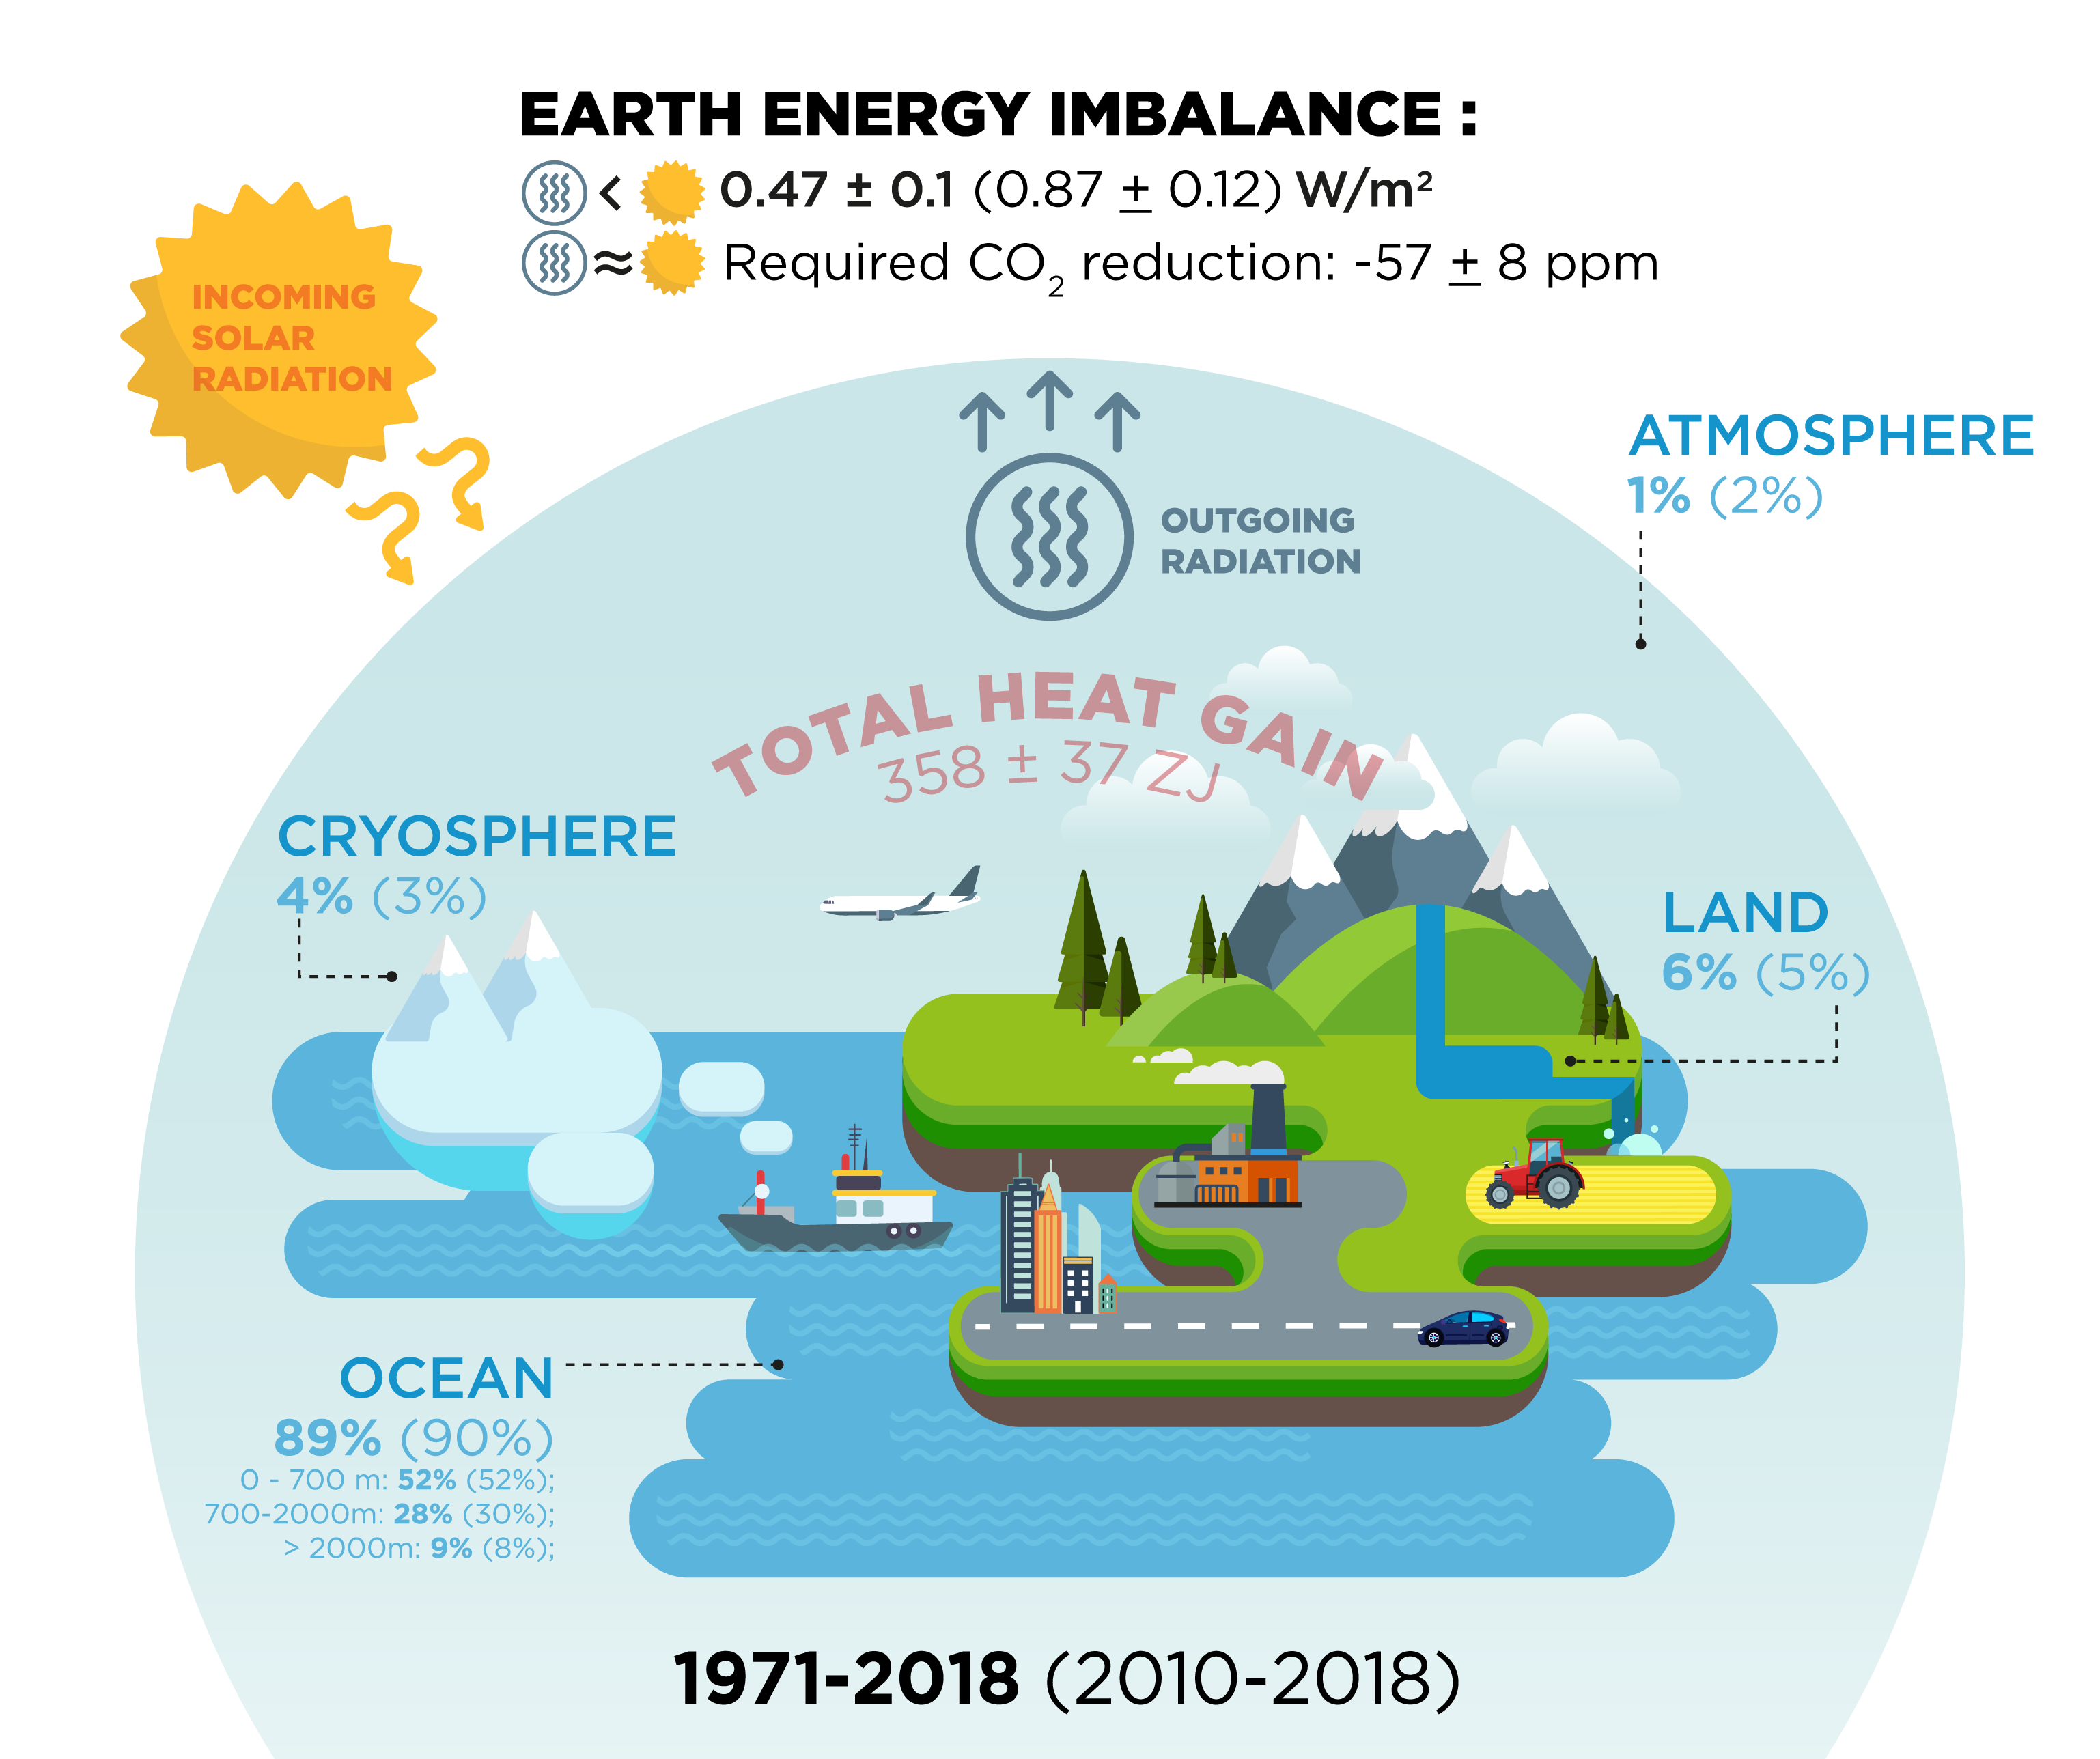 Earth Energy Imbalance